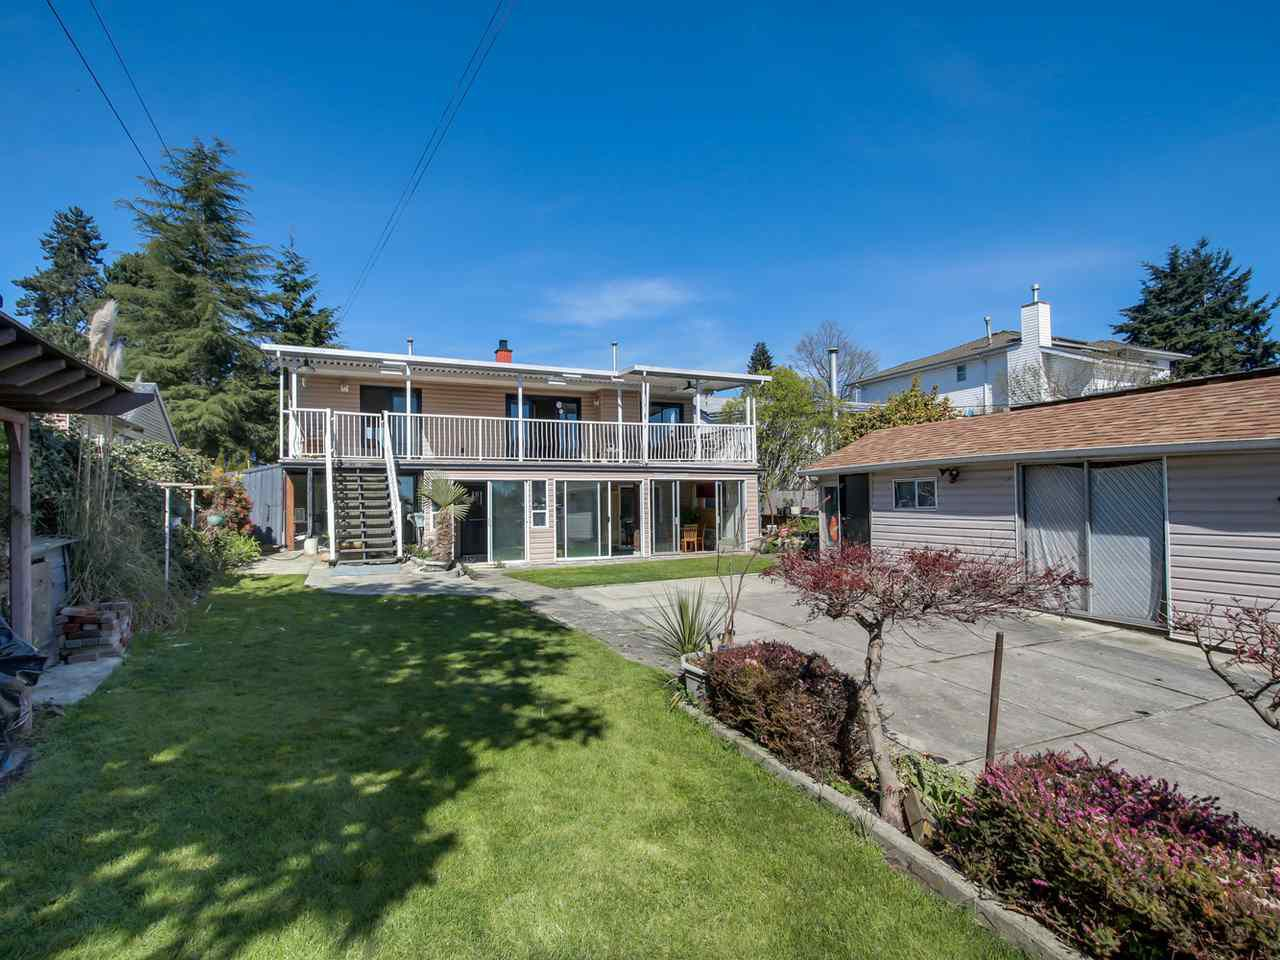 Photo 19: Photos: 449 E 5TH Street in North Vancouver: Lower Lonsdale House for sale : MLS®# R2056647